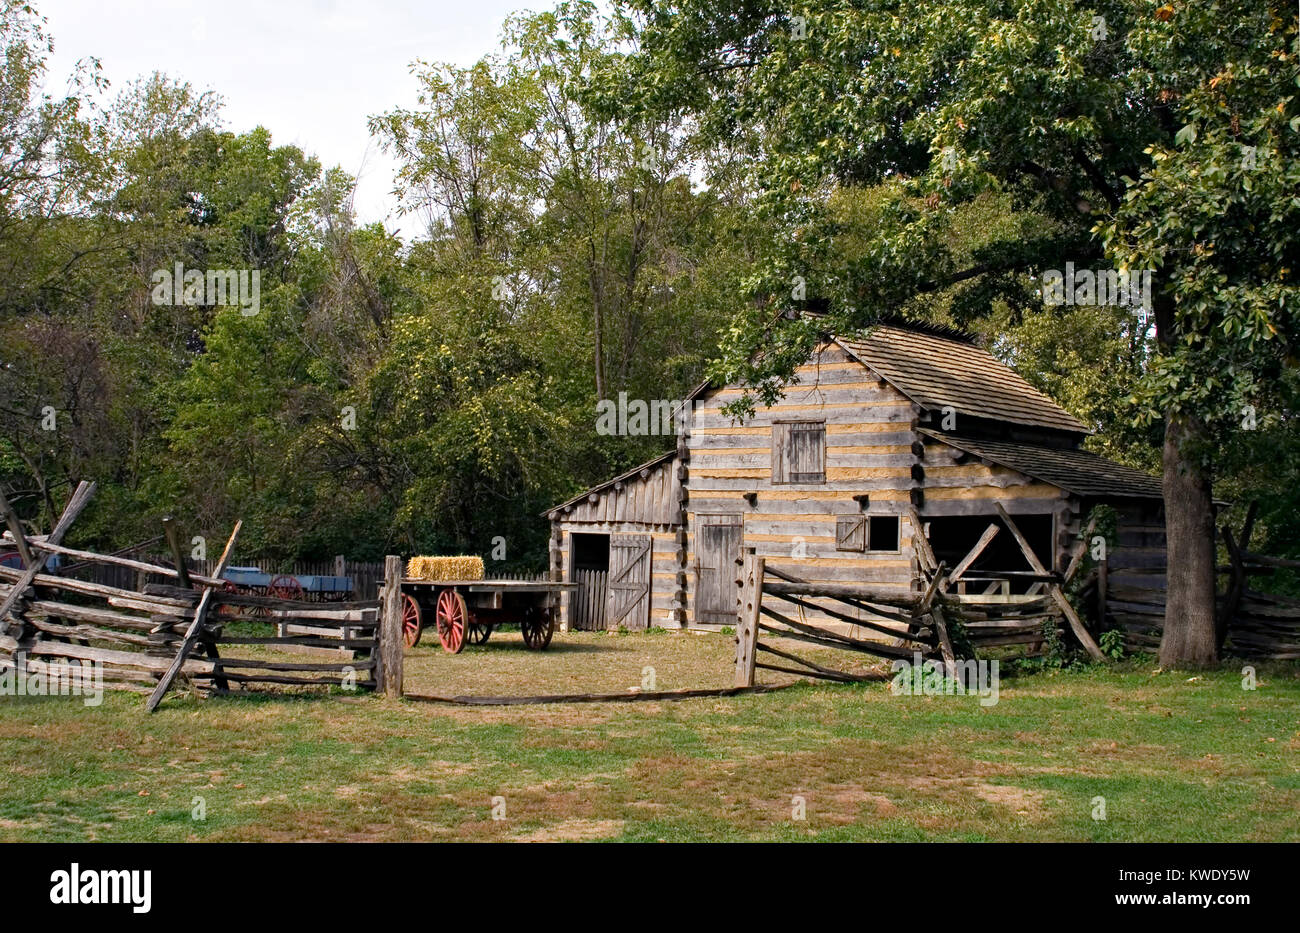 Pioneer Village Salem High Resolution Stock Photography And Images Alamy